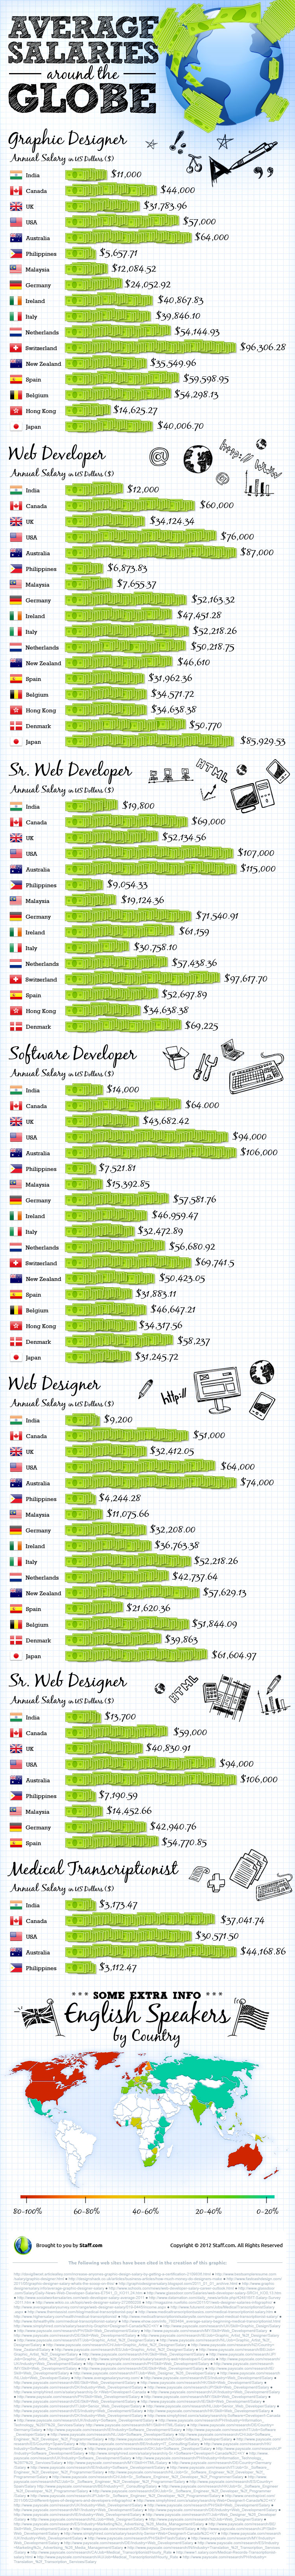 Average Salaries of Web Developers in India, the Philippines, USA and around the World